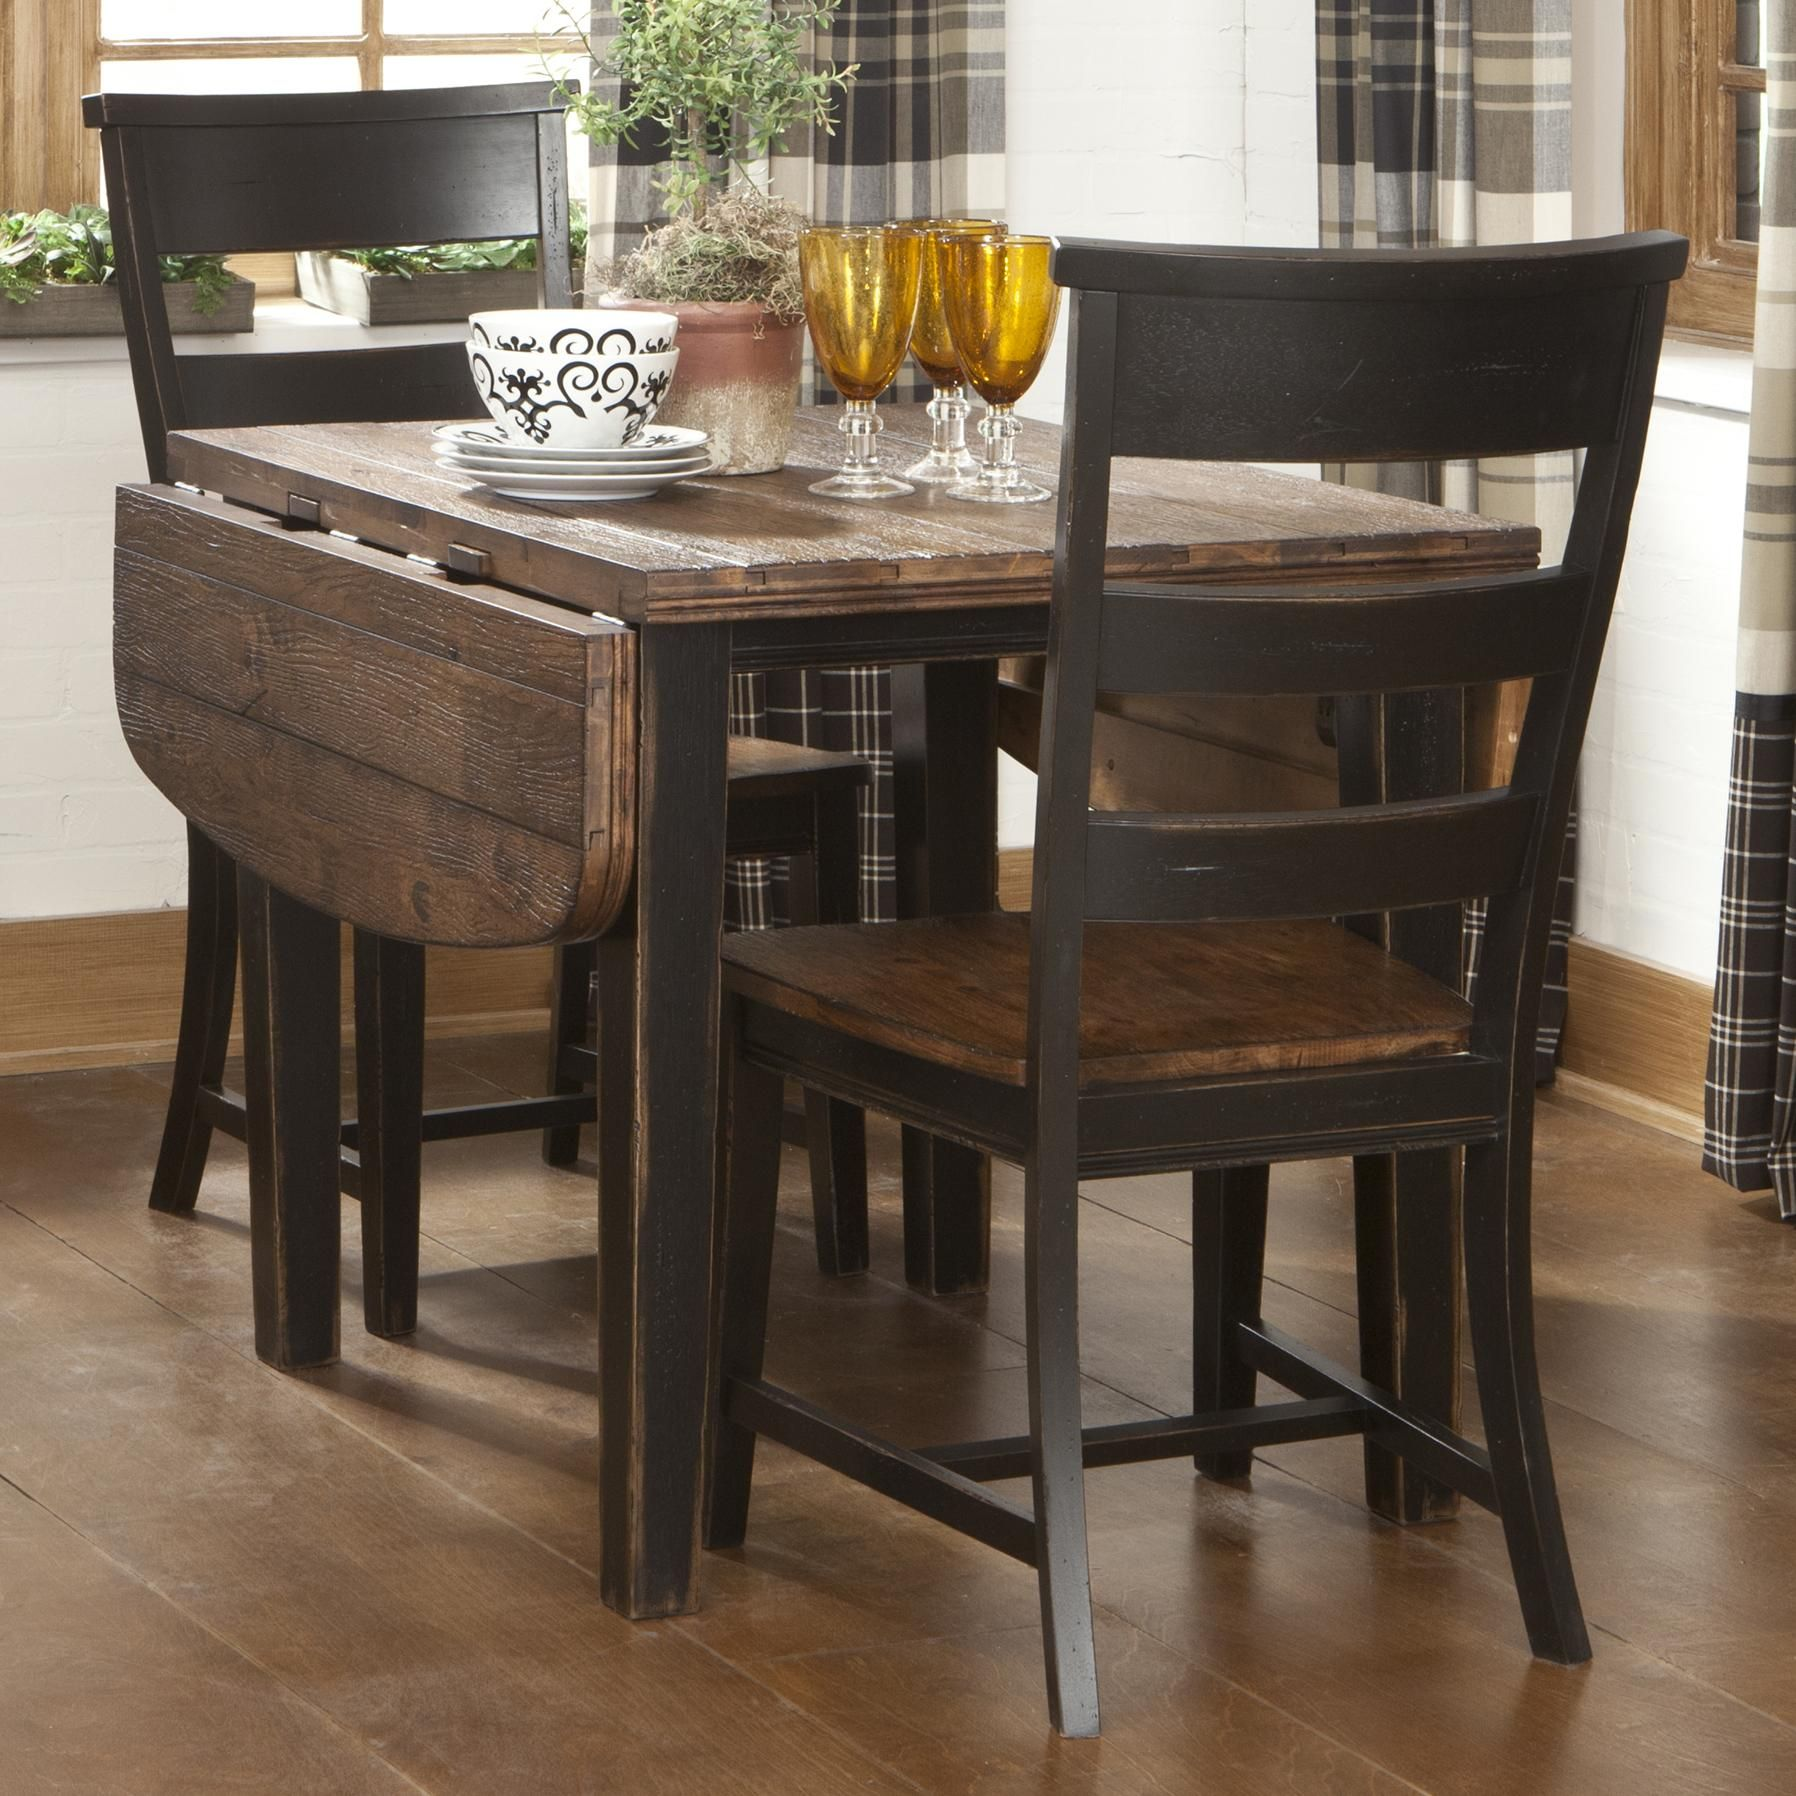 Kitchen Table And Chairs 17 Best Images About Small Table Chairs On Pinterest Drop Leaf